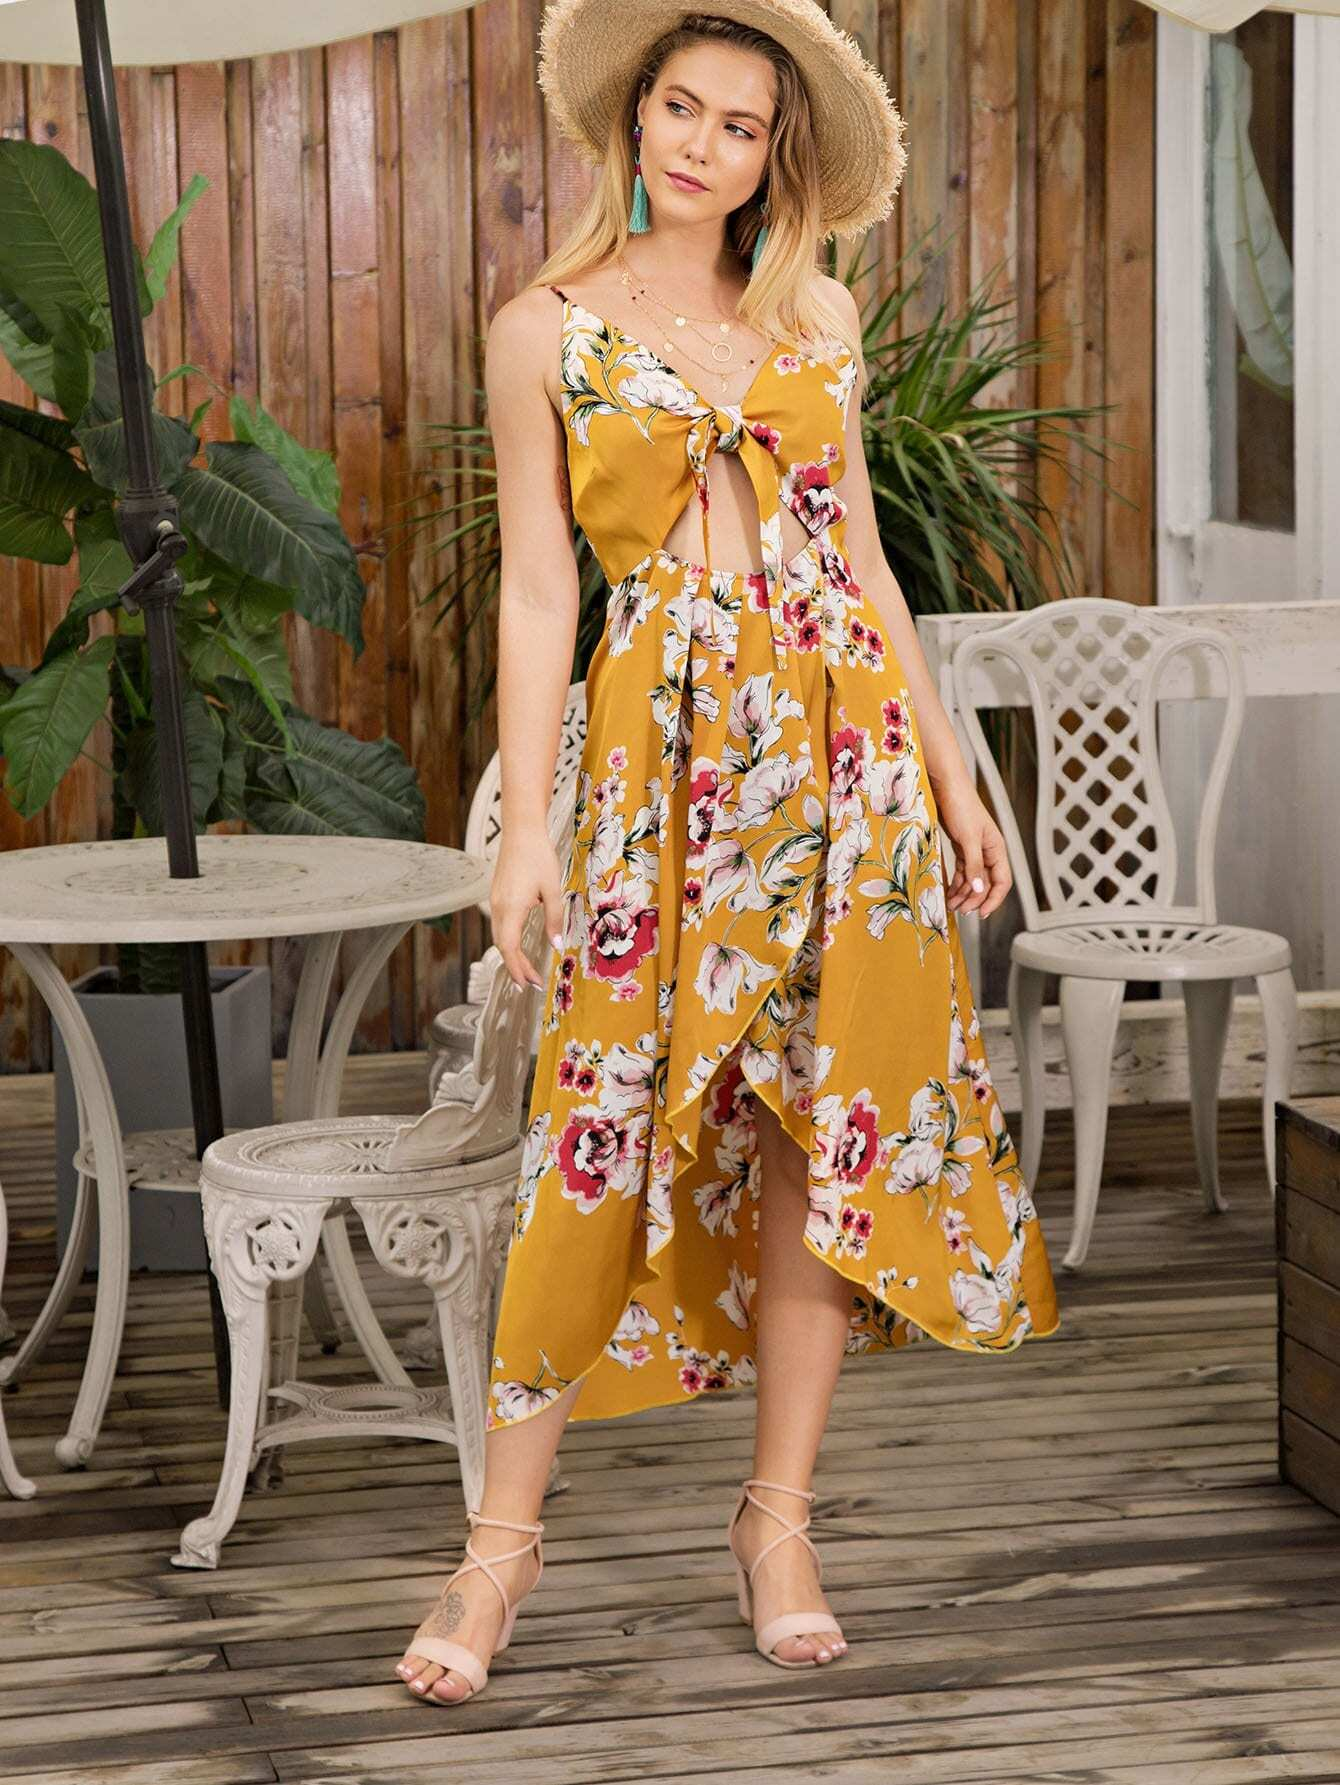 Floral Print Knot Front Cut Out Asymmetrical Hem Dress hr 12 7 2